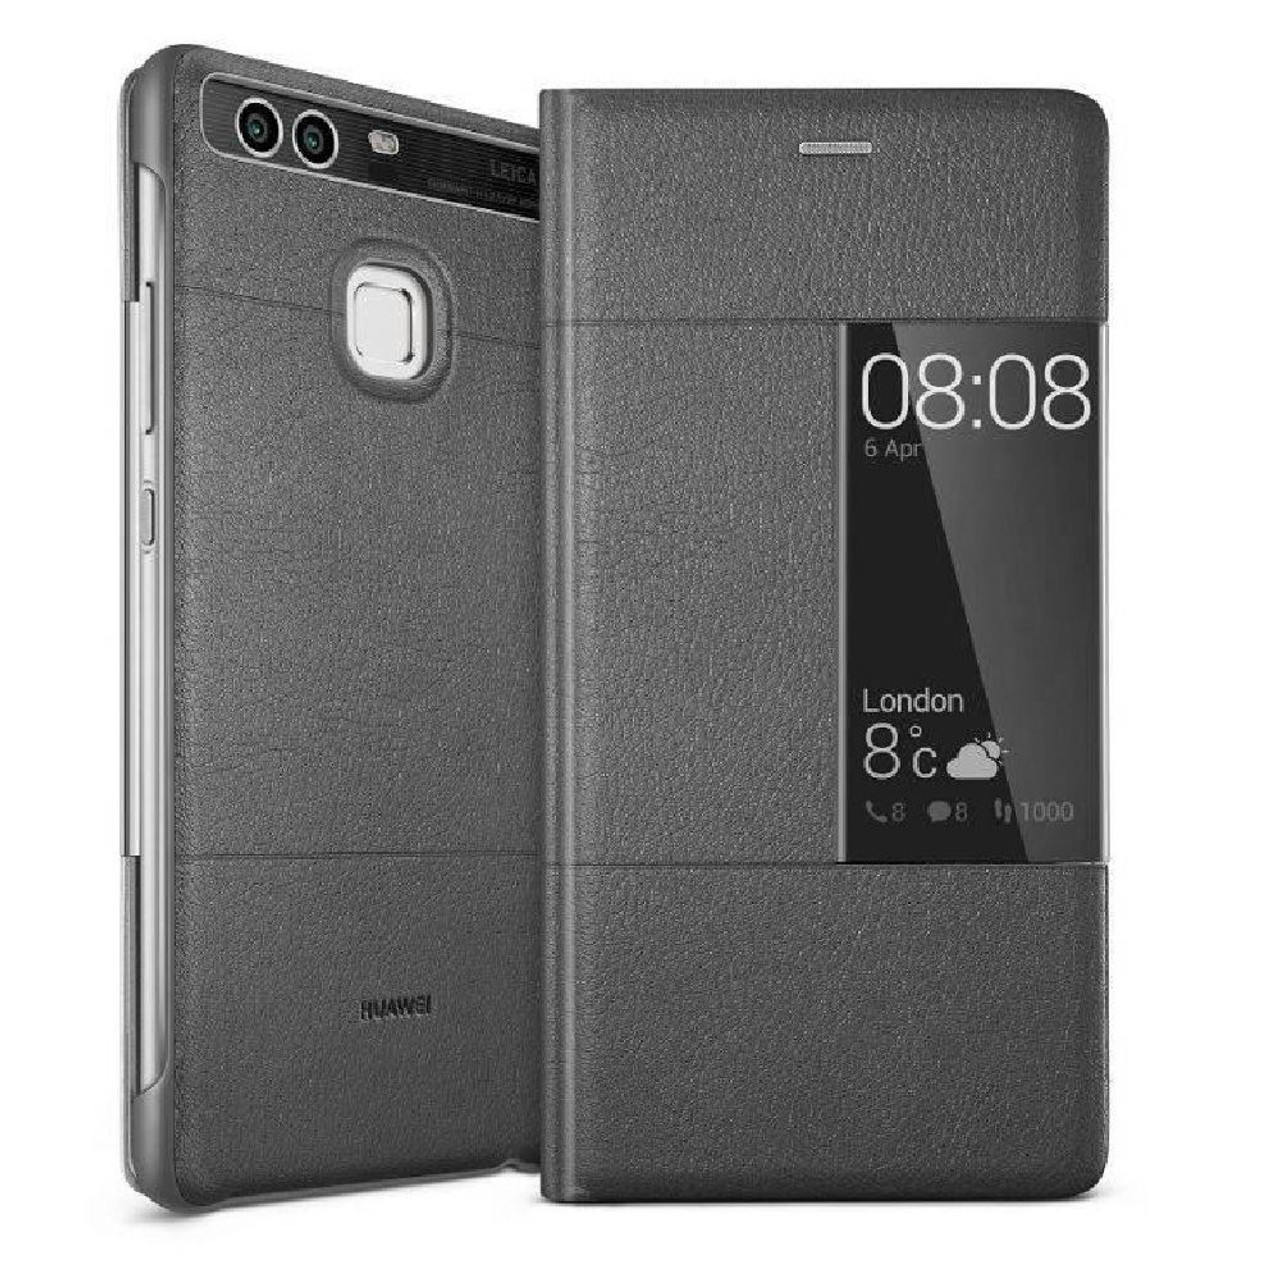 low priced a5ced 32f6b Official Huawei Smart View Flip Cover Case for Huawei P9 - Dark Grey